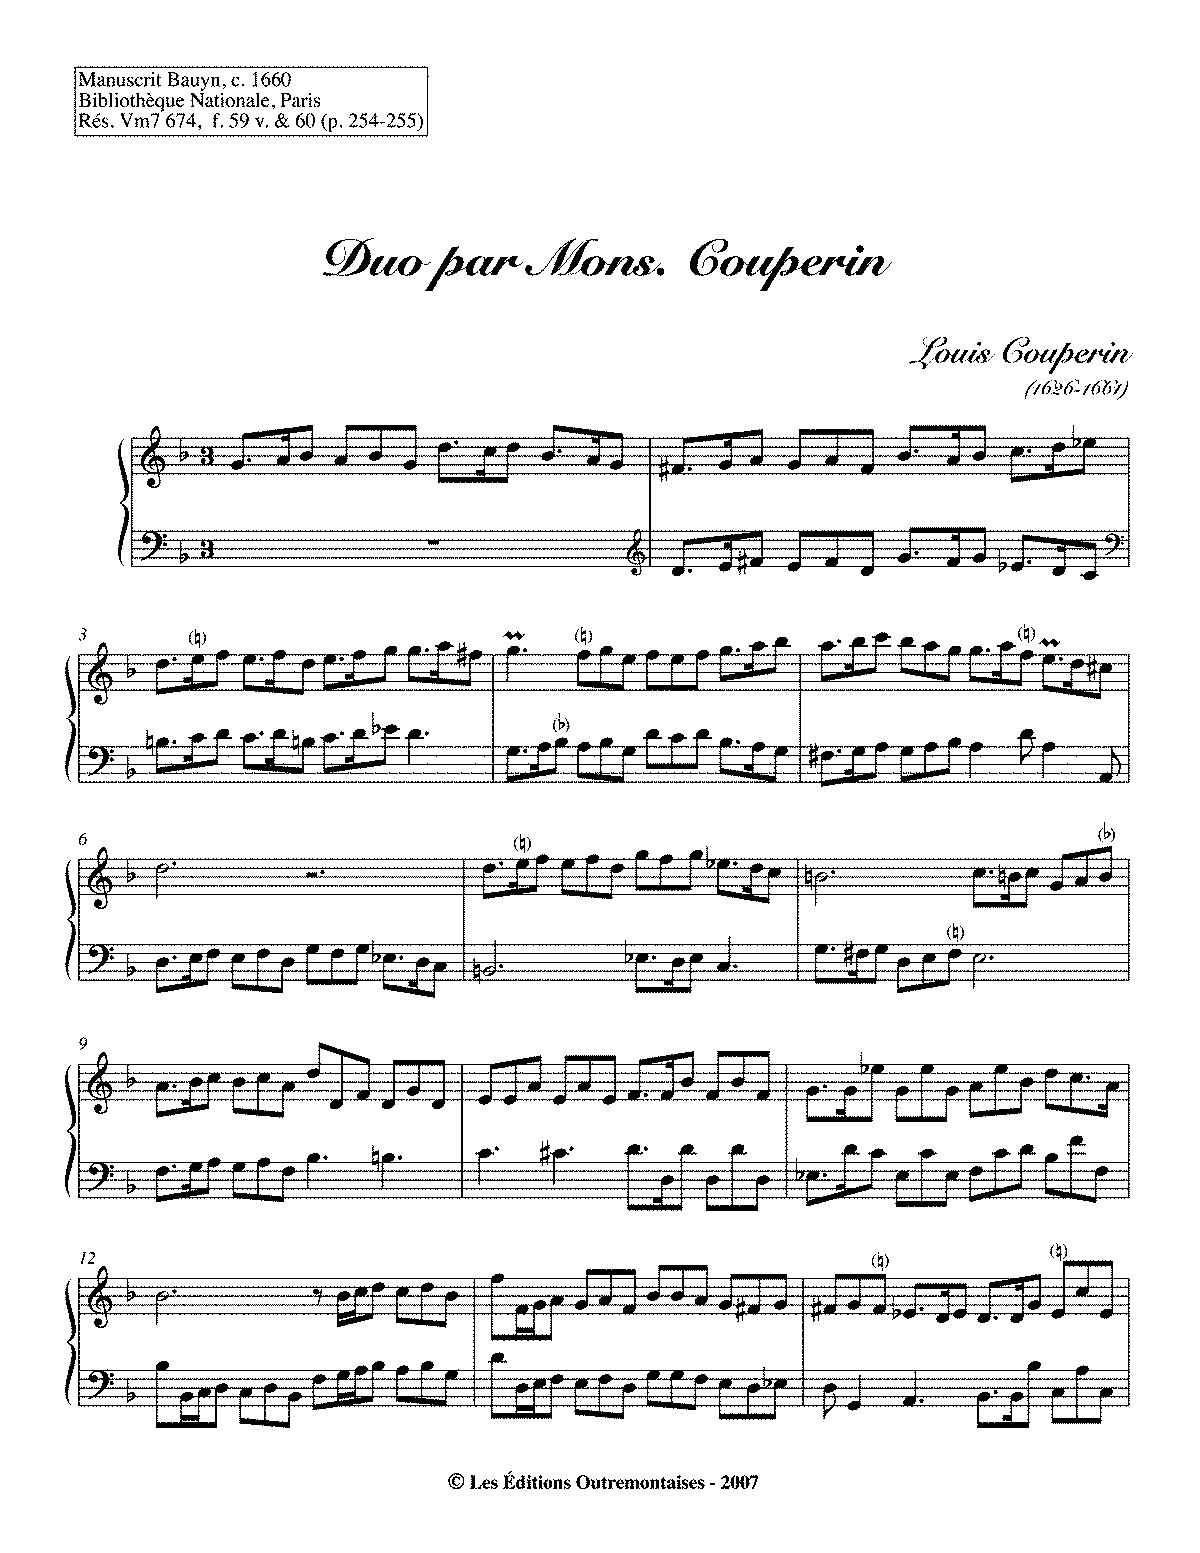 WIMA.2422-Couperin Louis Duo 1.pdf